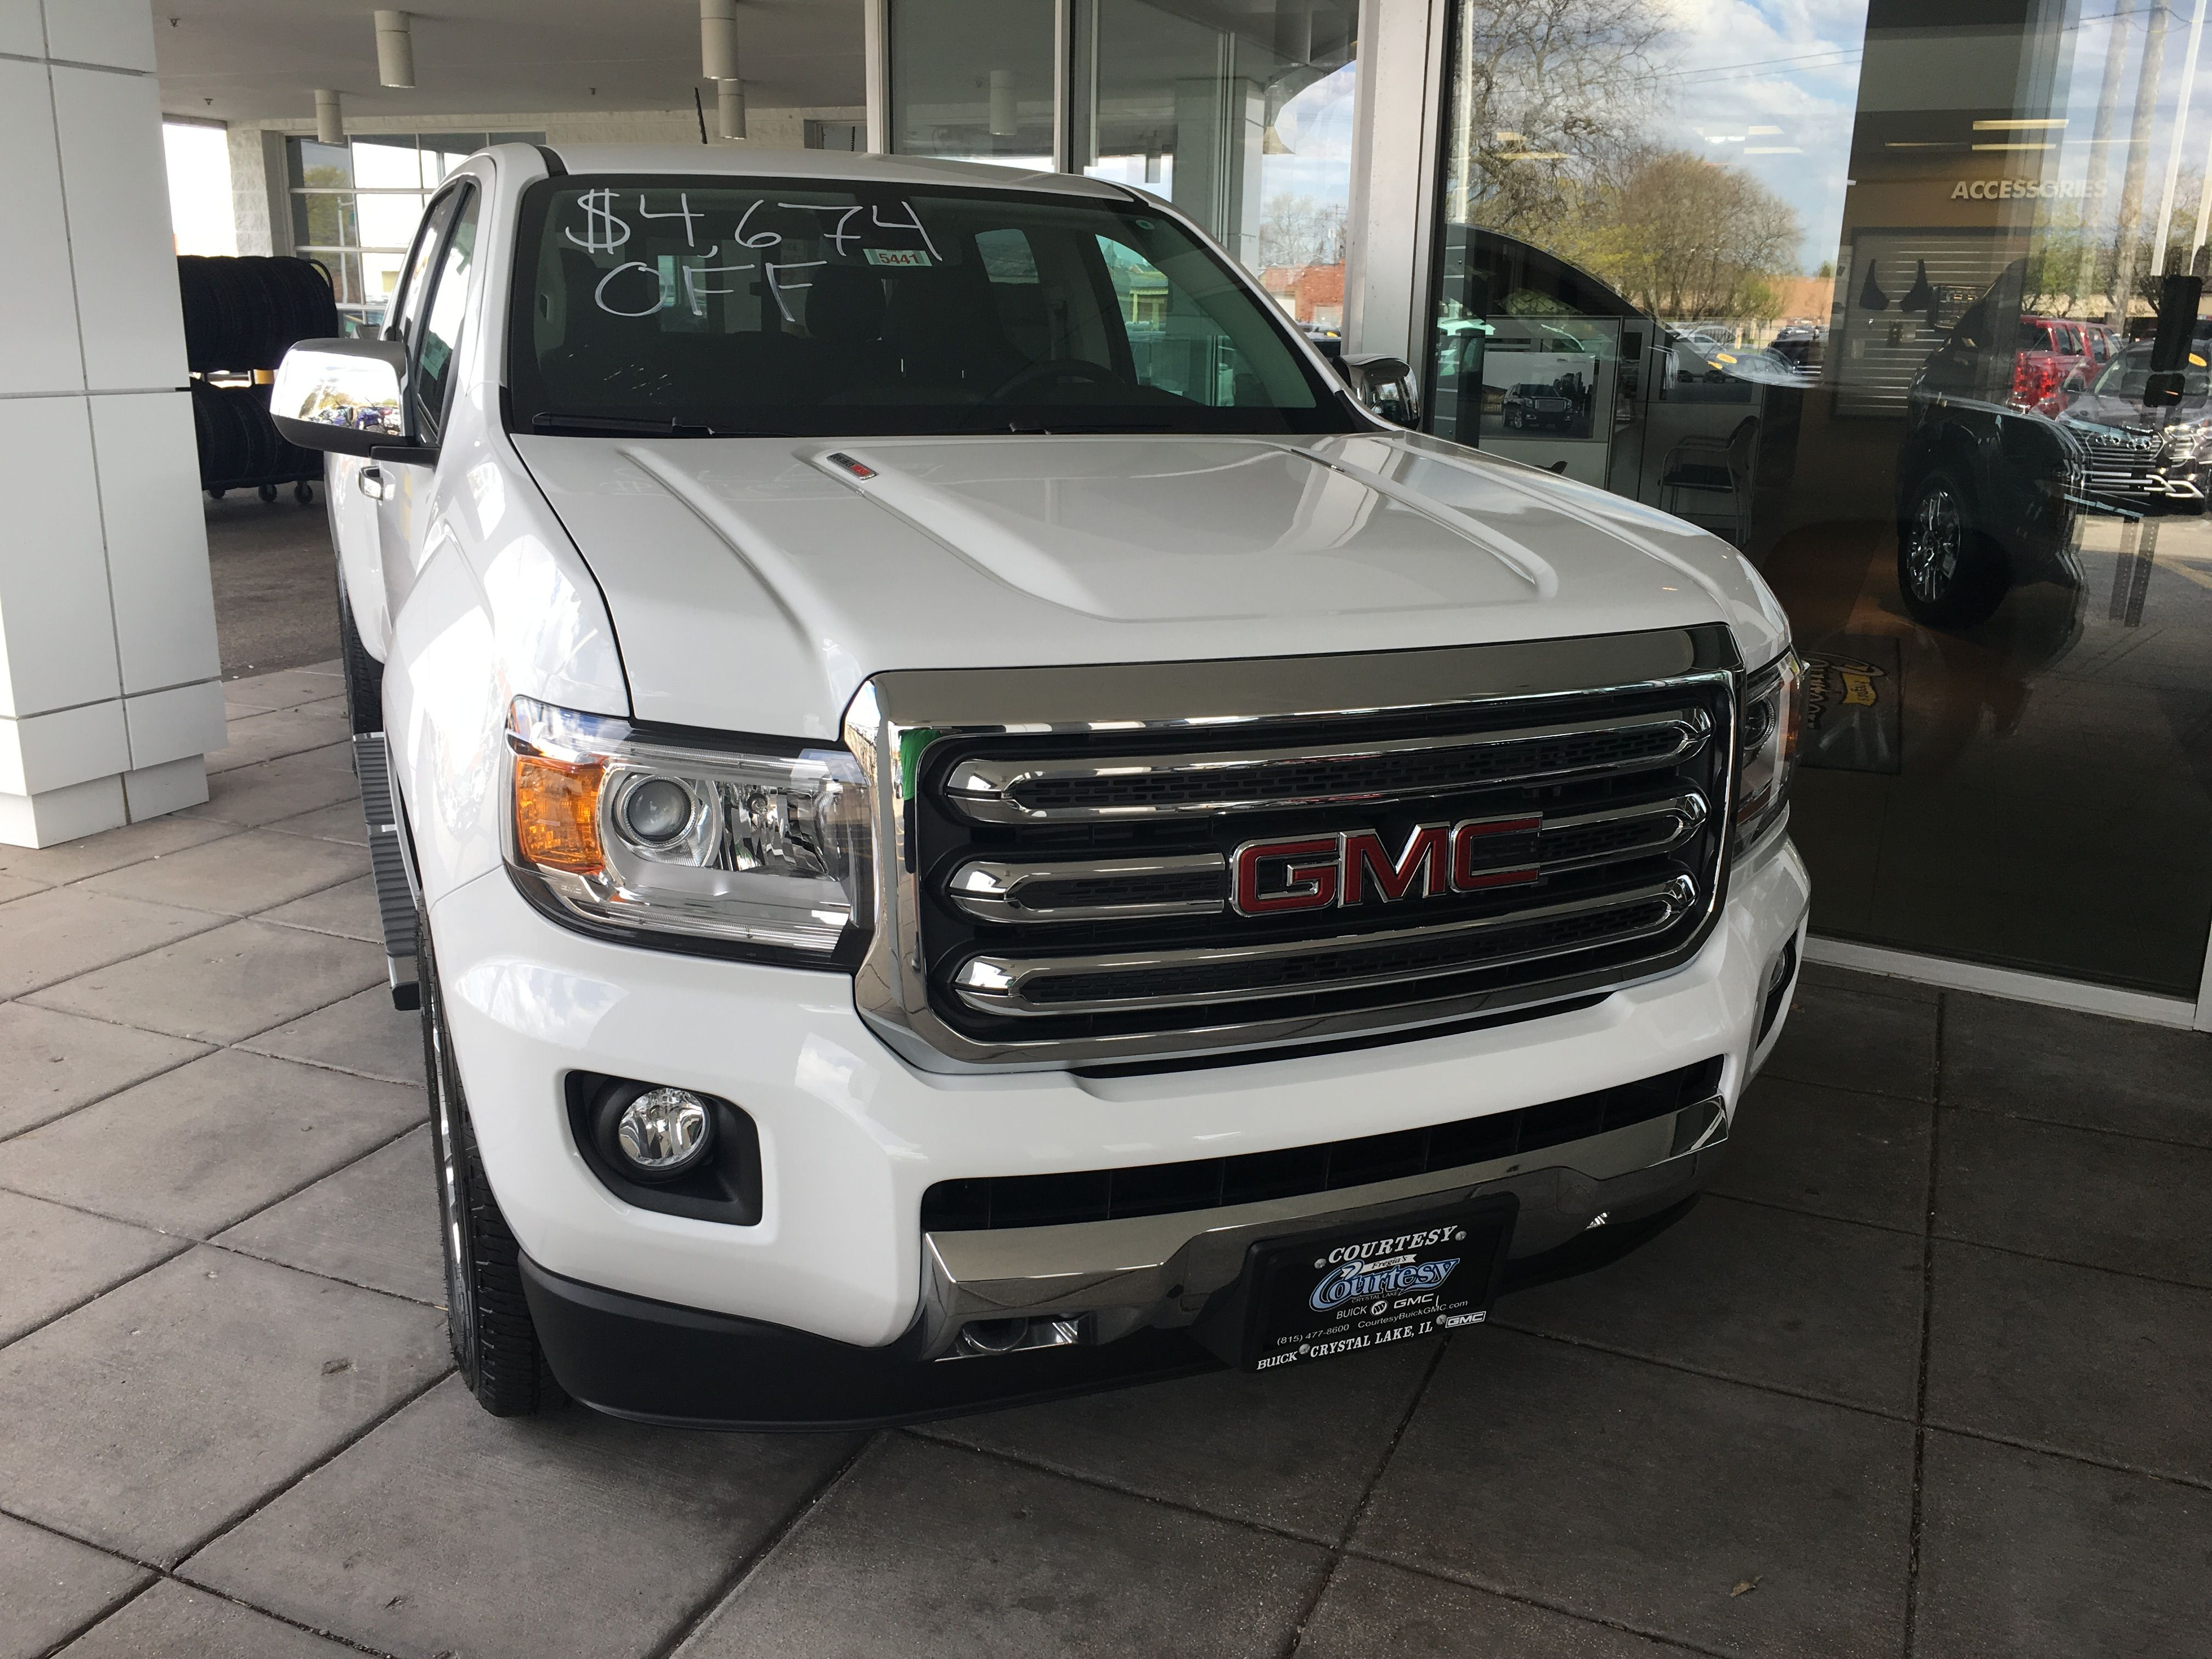 2017 Gmc Canyon 4wd Slt Long Box In Summit White With 2 8 Duramax Diesel I Do Like The Gmc Style More Than The Gmc Canyon Chevrolet Colorado Duramax Diesel